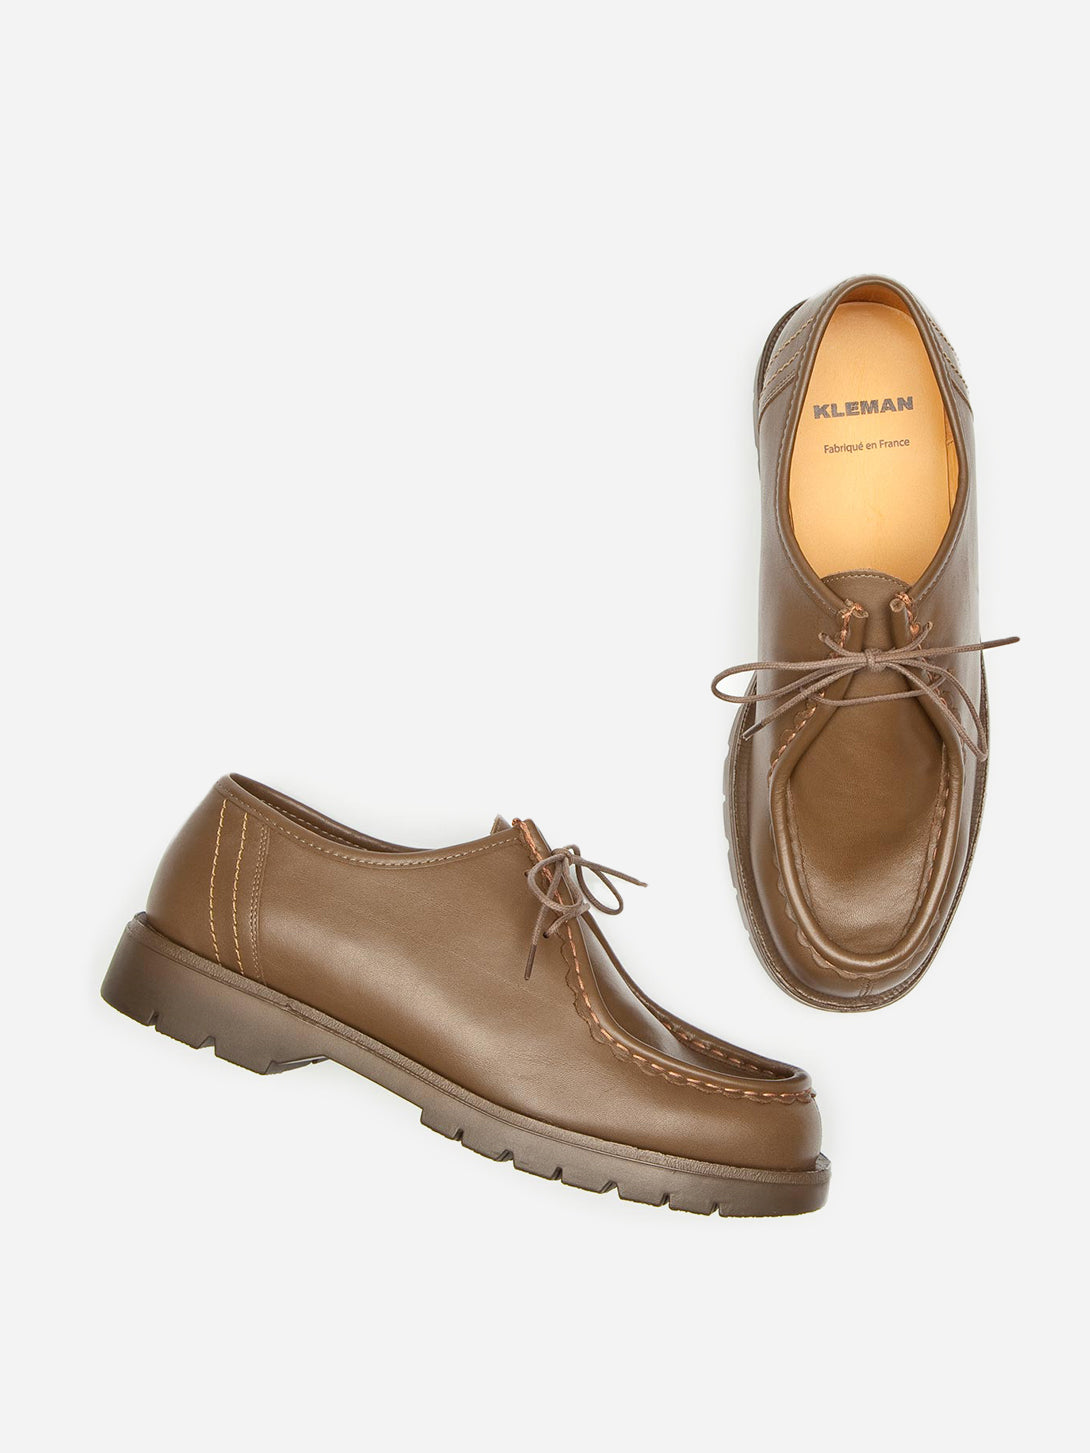 ons mens clothing kleman leather shoes padror TAUPE